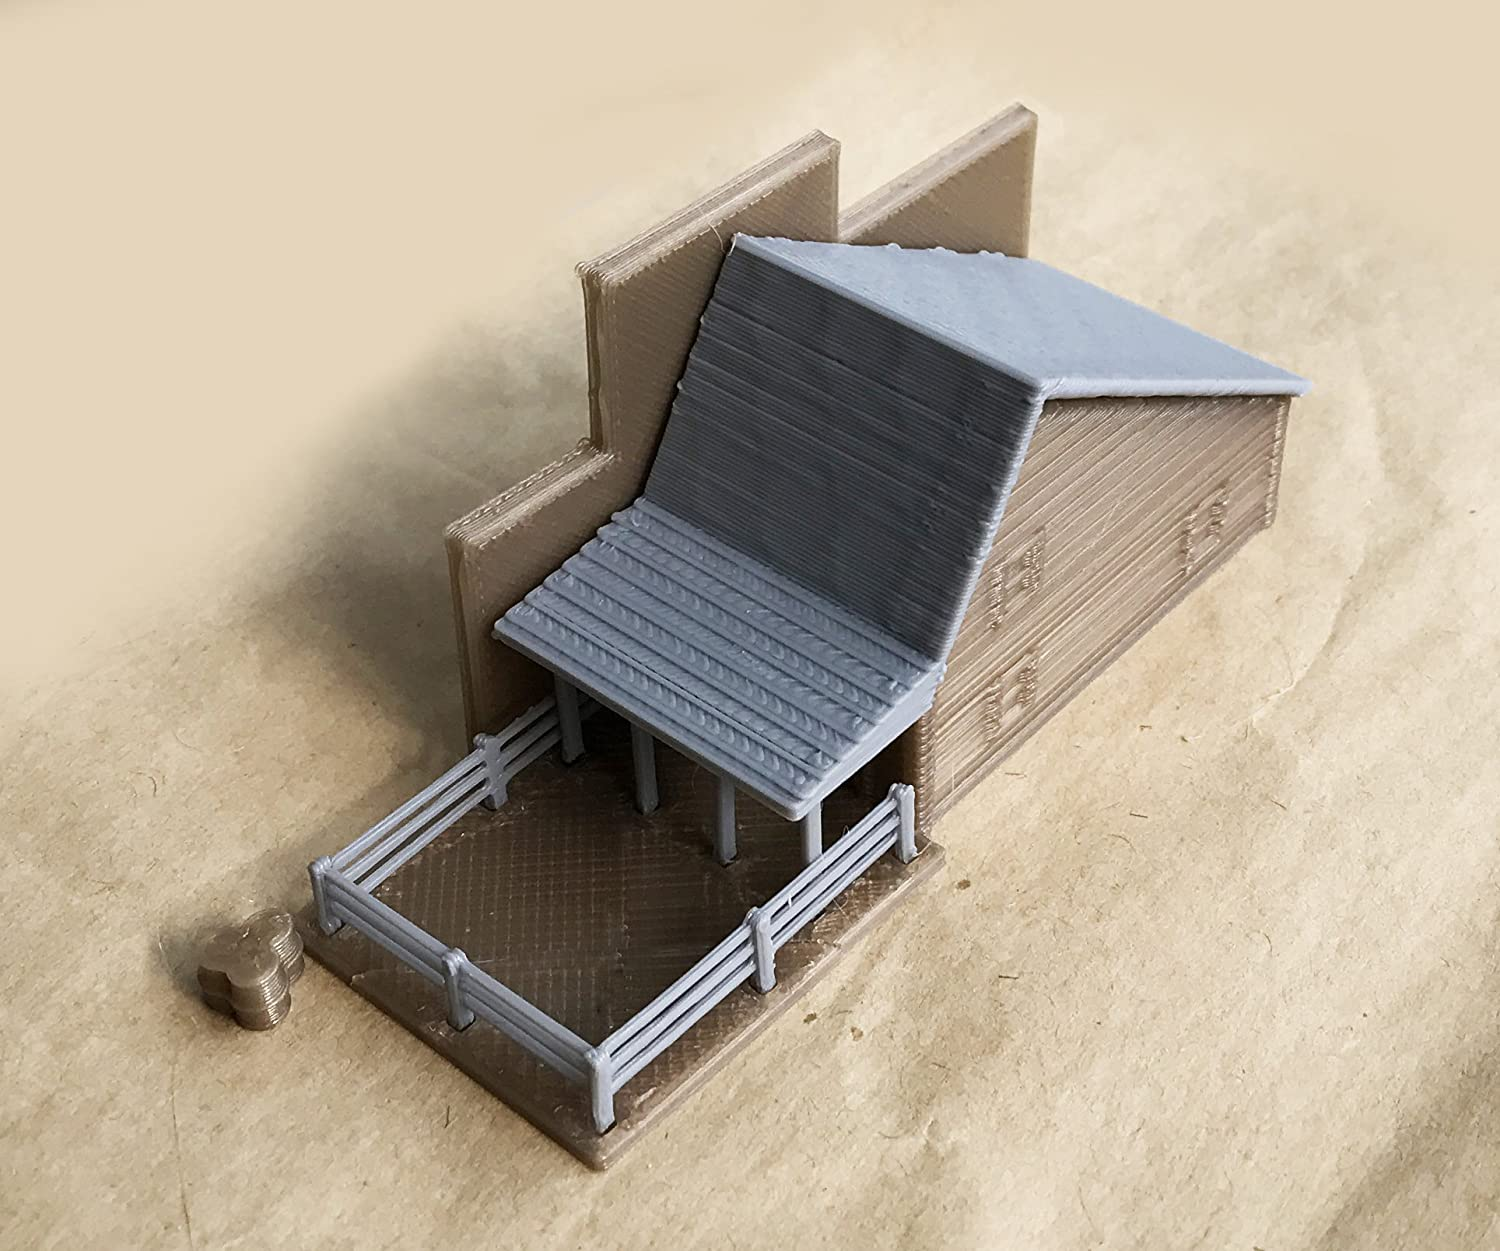 outland models Train Railway Layout Old West Livery Stable N Gauge 1:160